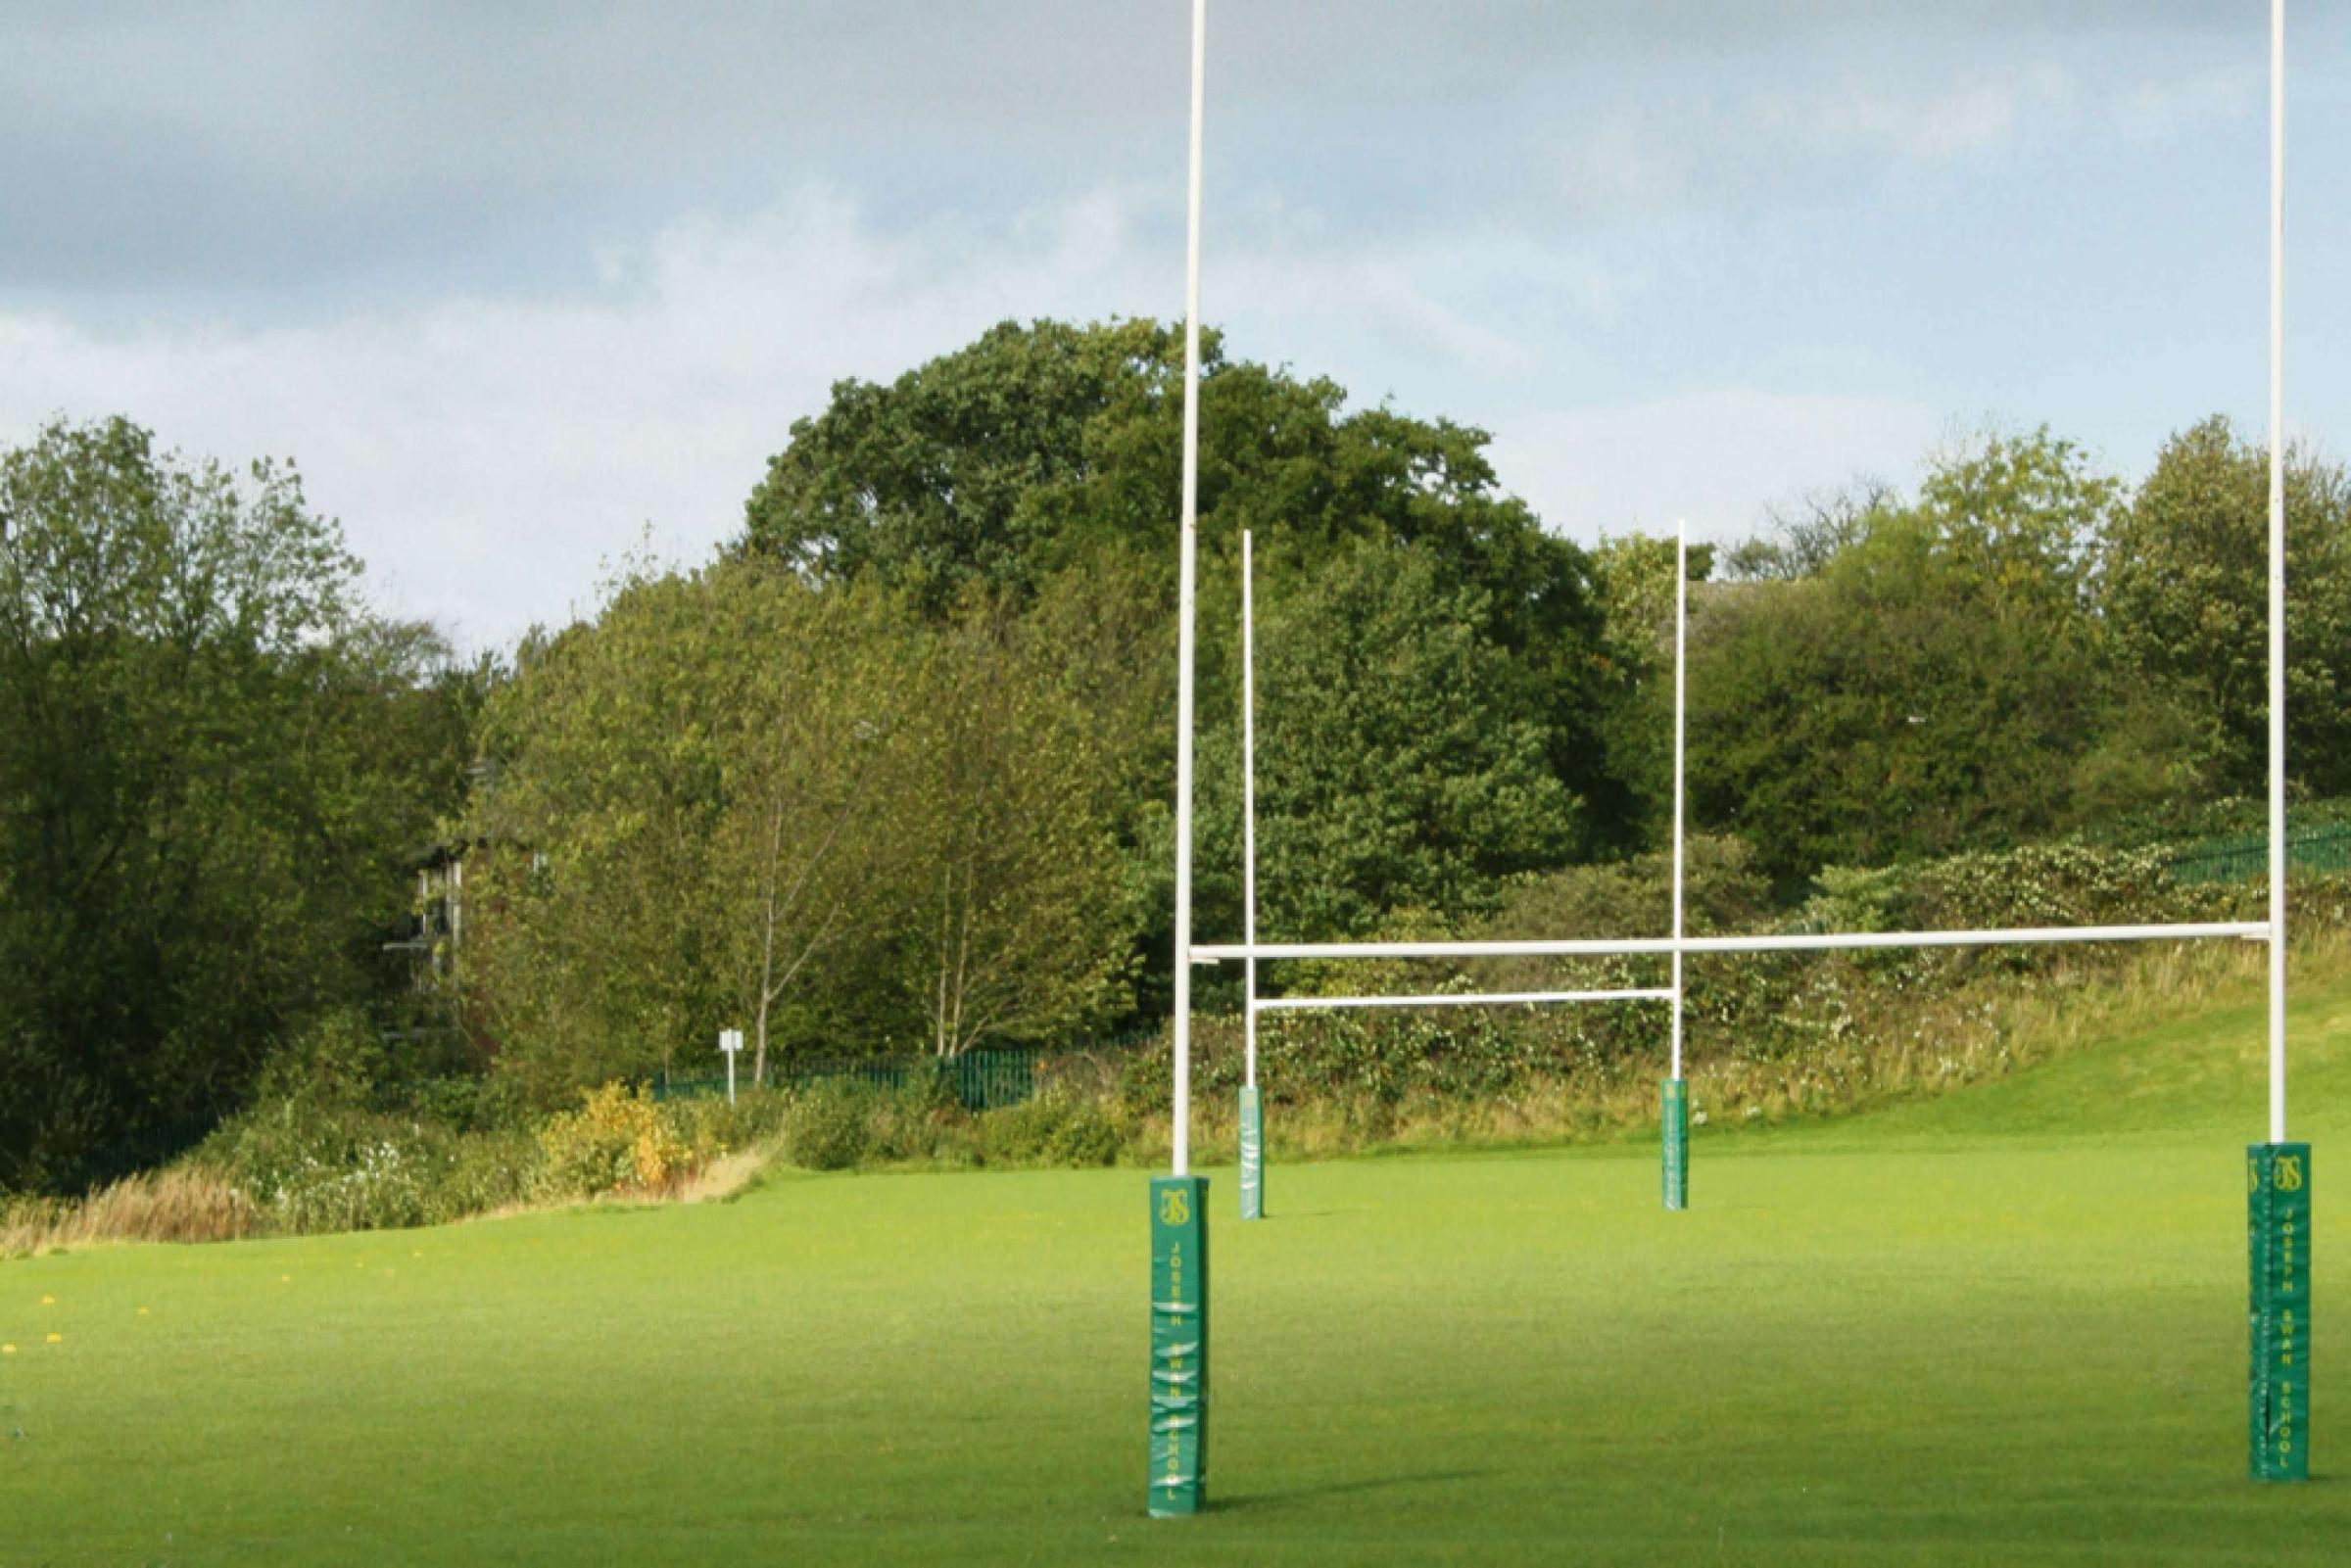 Carmarthenshire Council accused of 'blackmail' over sports pitches plan